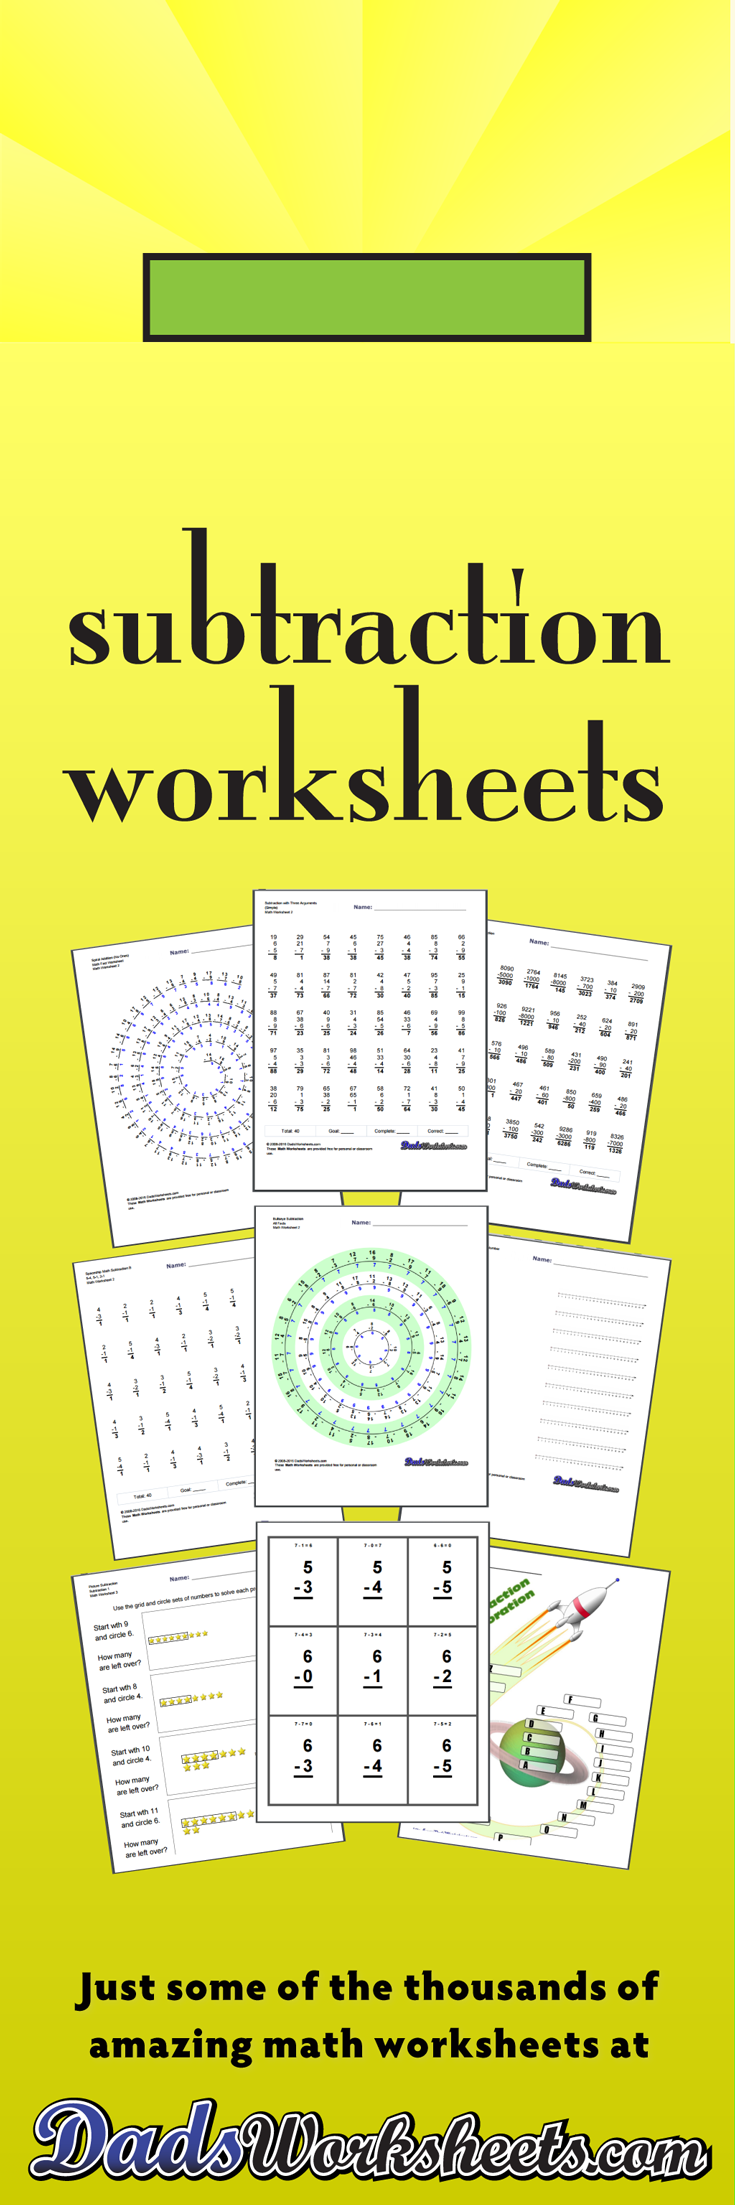 hight resolution of Printable Subtraction Worksheets with Answer Keys! Timed tests